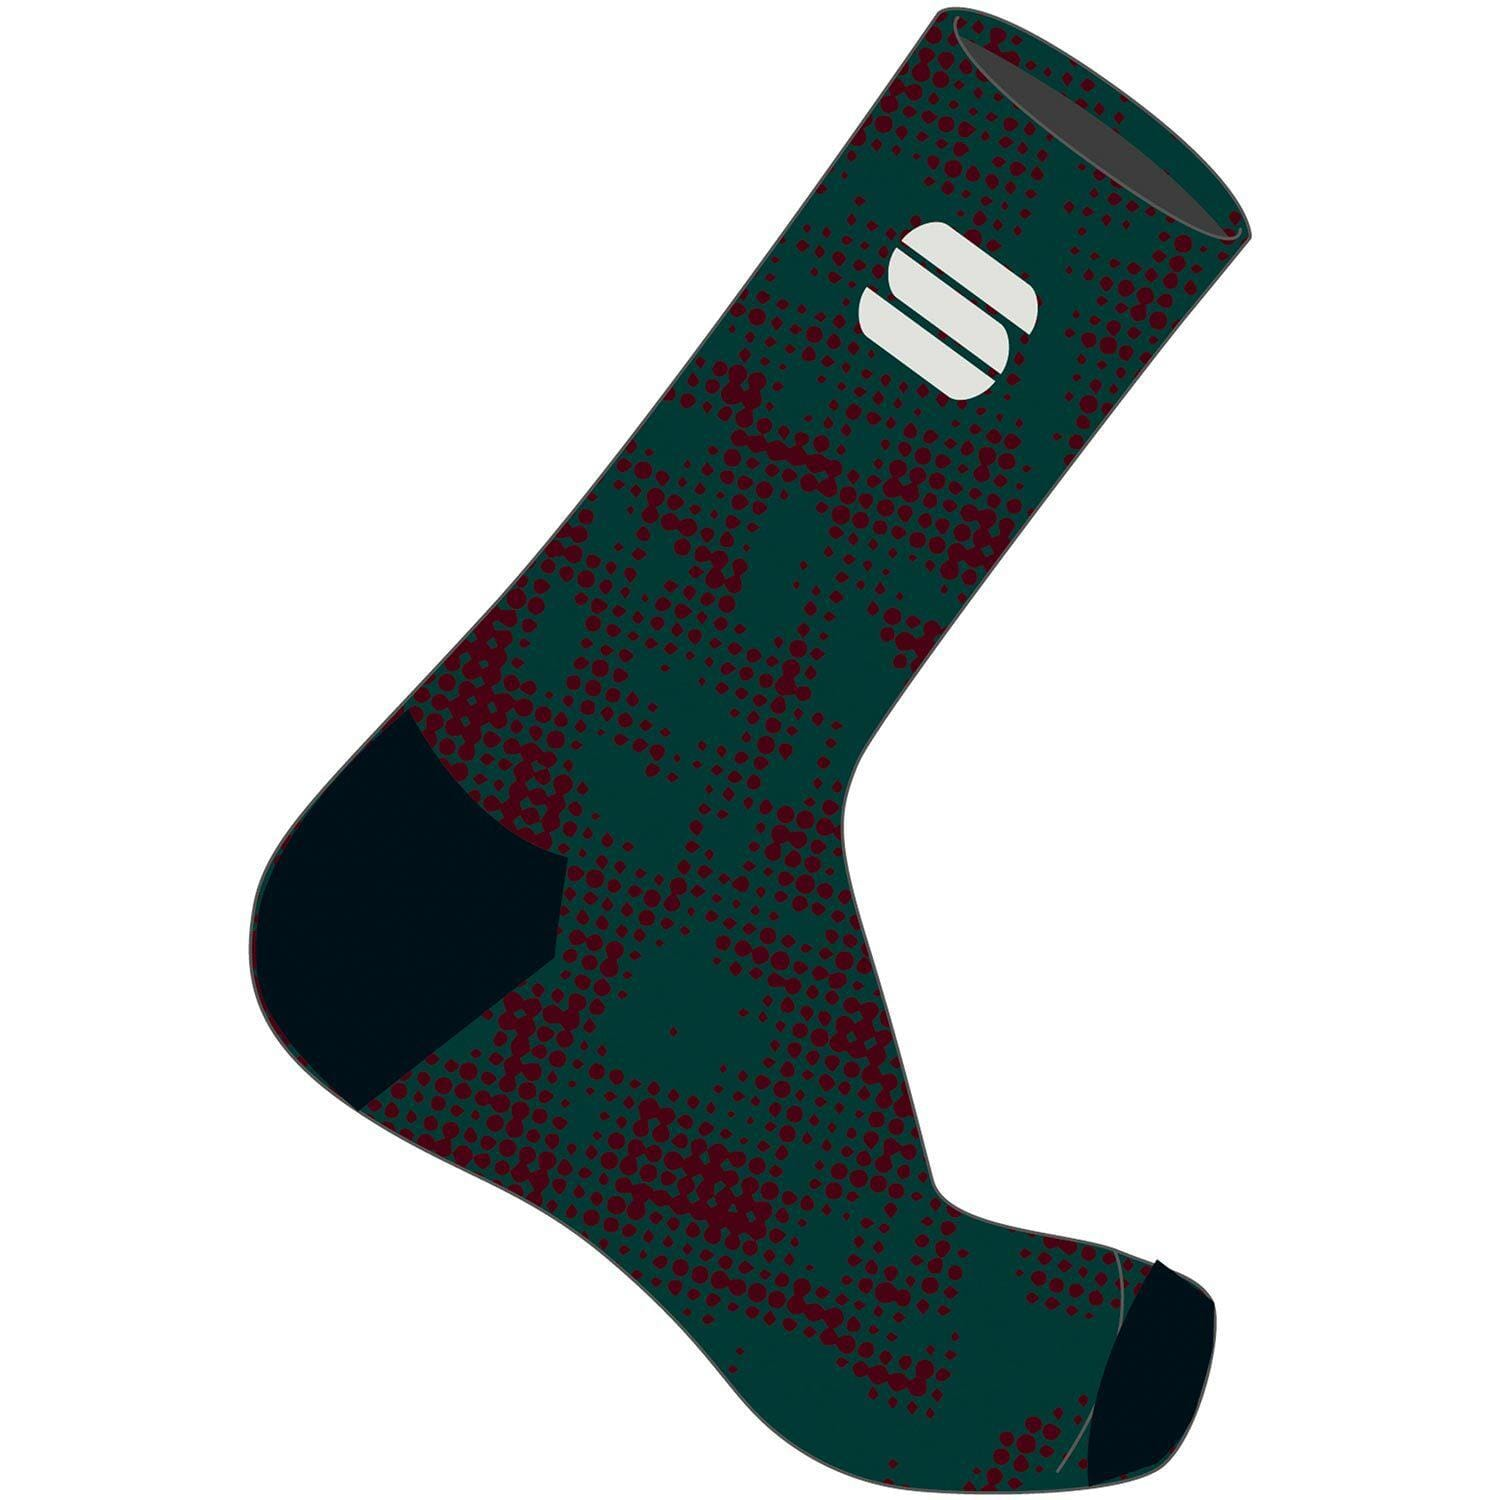 Sportful-Sportful Escape Socks-Sea Moss-S-SF2104332912-saddleback-elite-performance-cycling